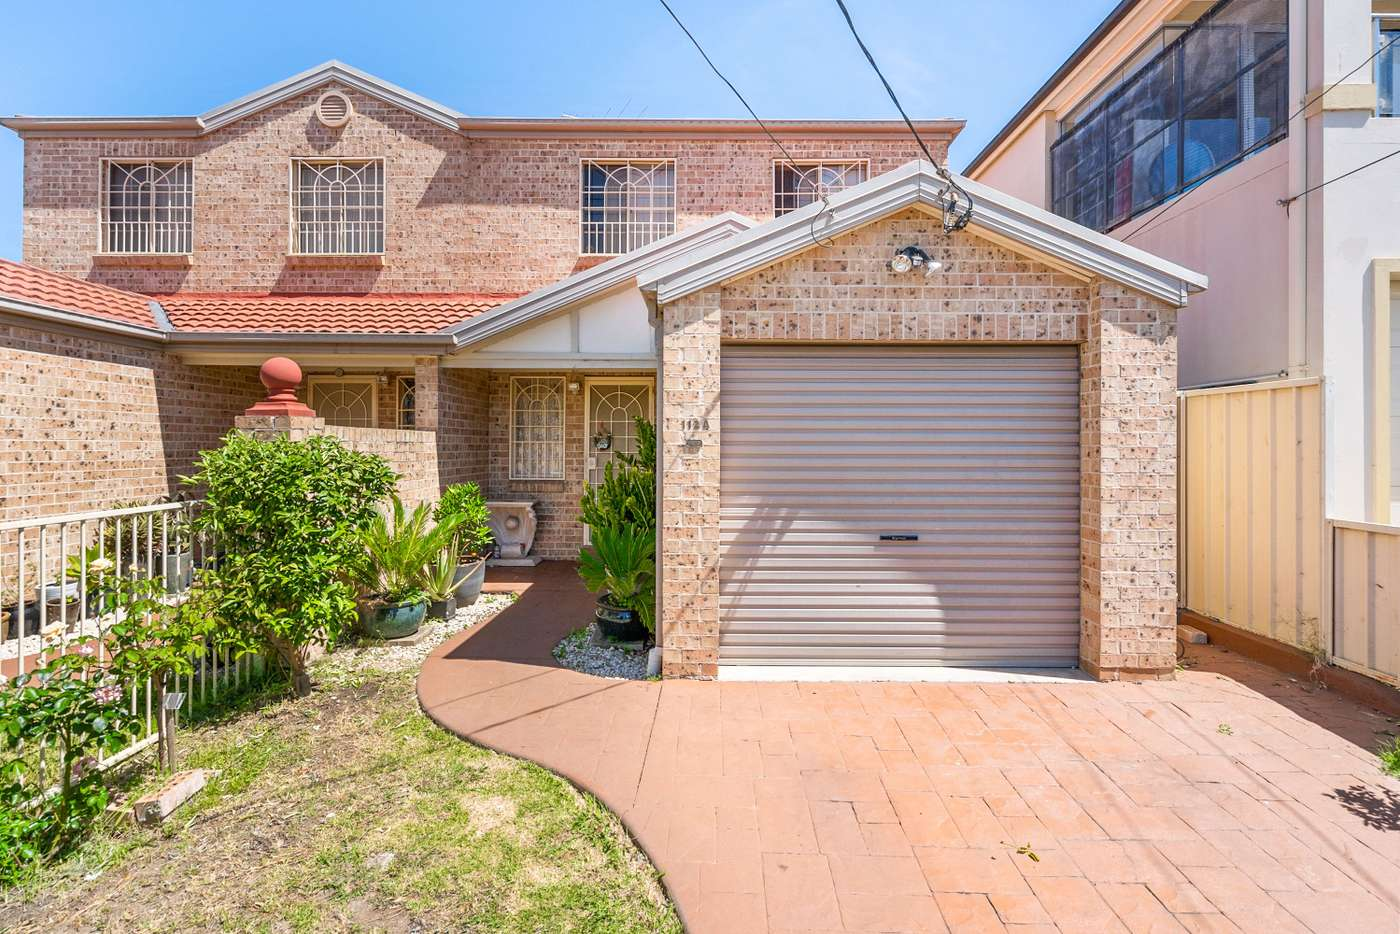 Main view of Homely house listing, 112A Kiora Street, Canley Heights NSW 2166